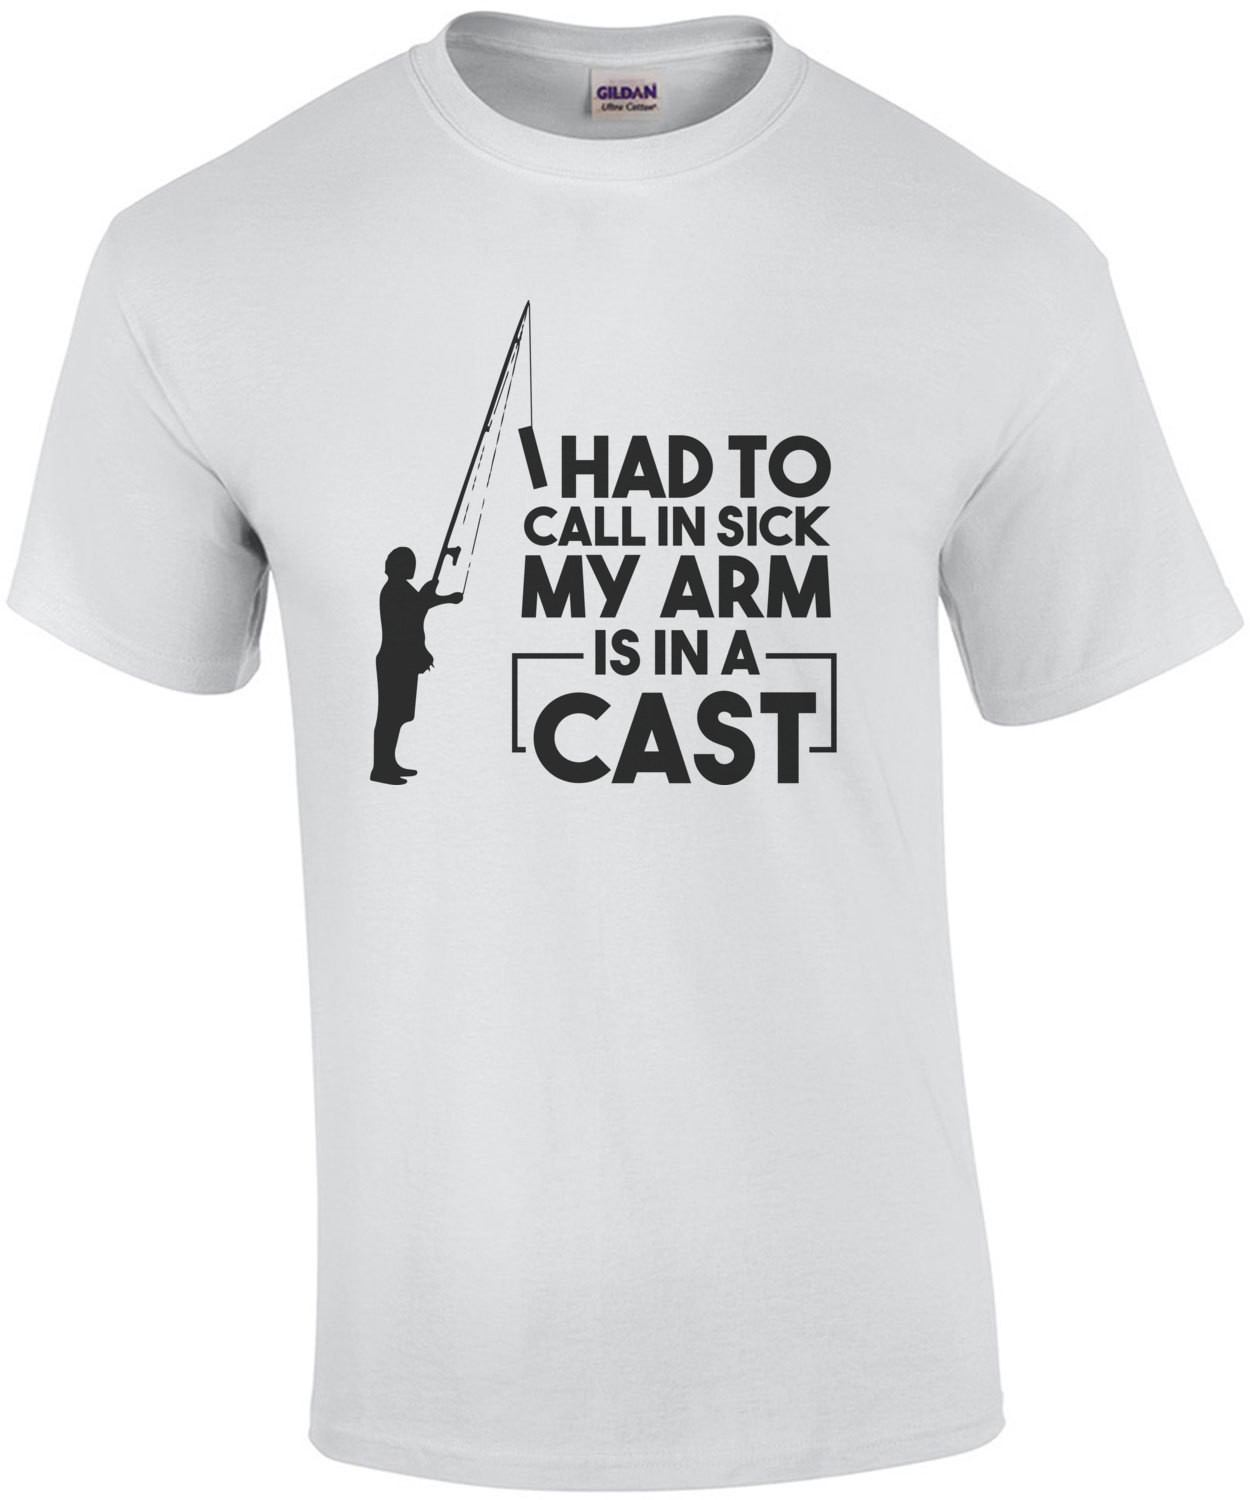 I had to call in sick my arm is in a cast - funny fishing t-shirt